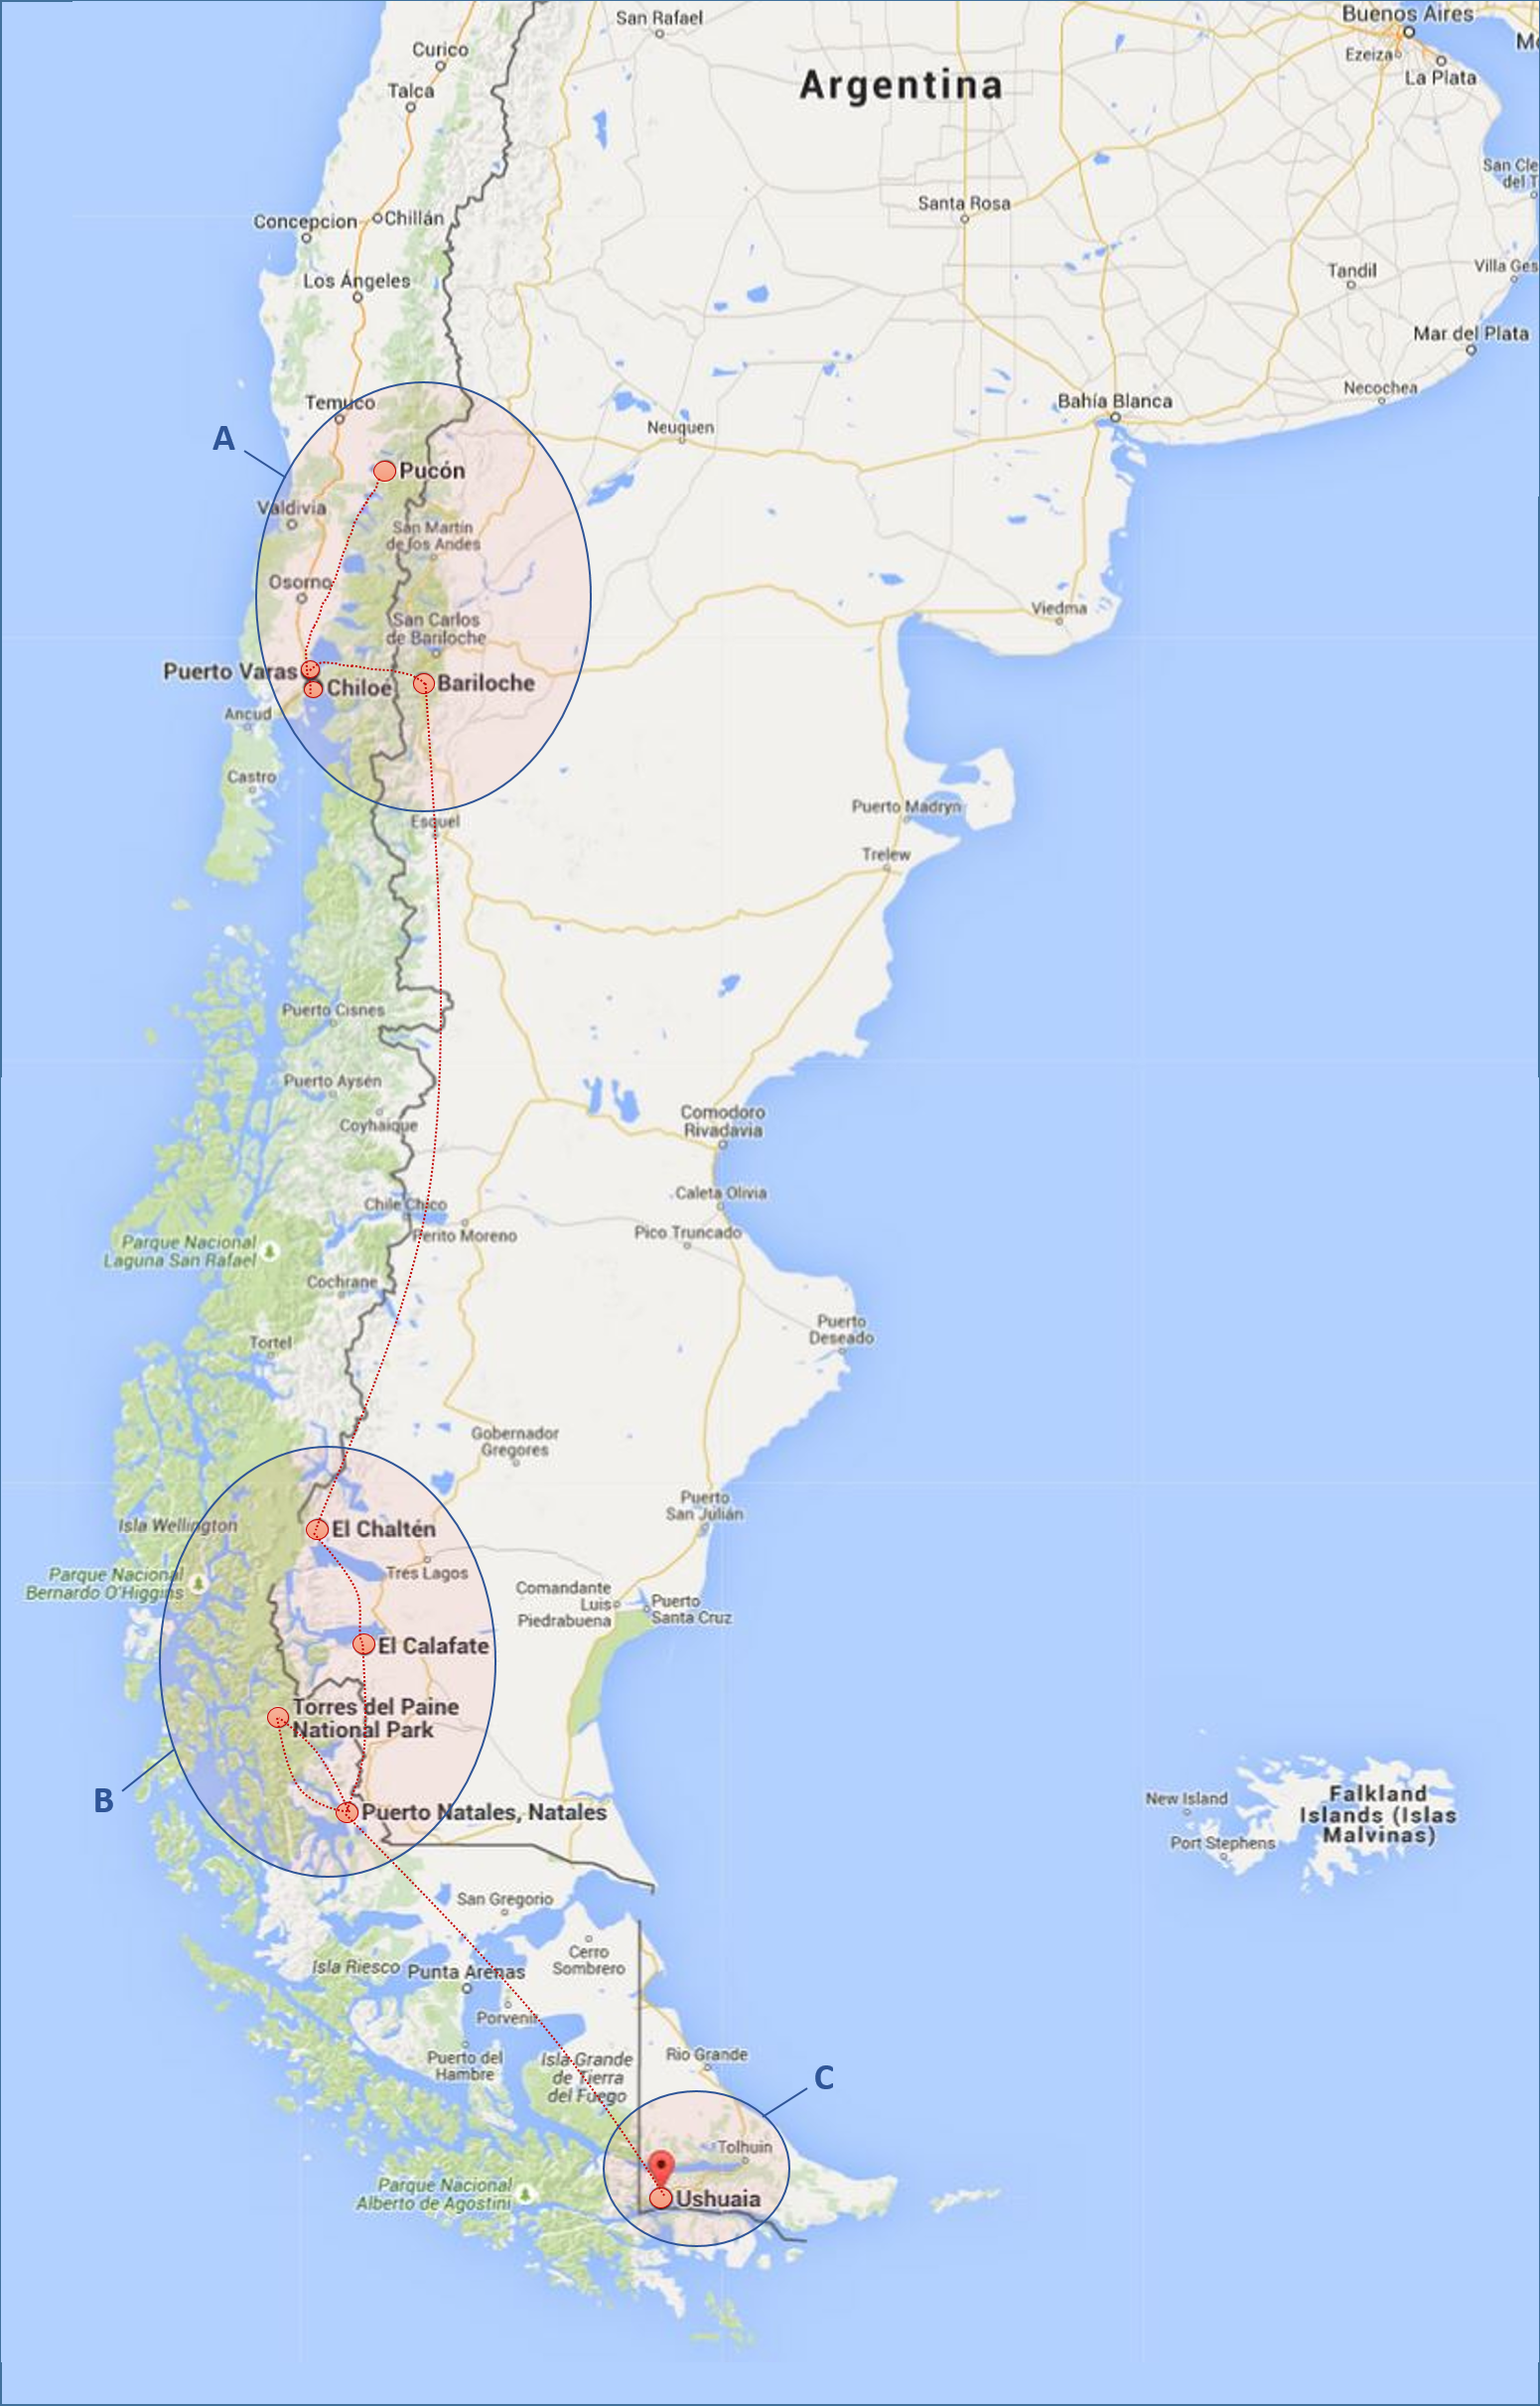 Our Tentative Route Through Patagonia (3-4 weeks)